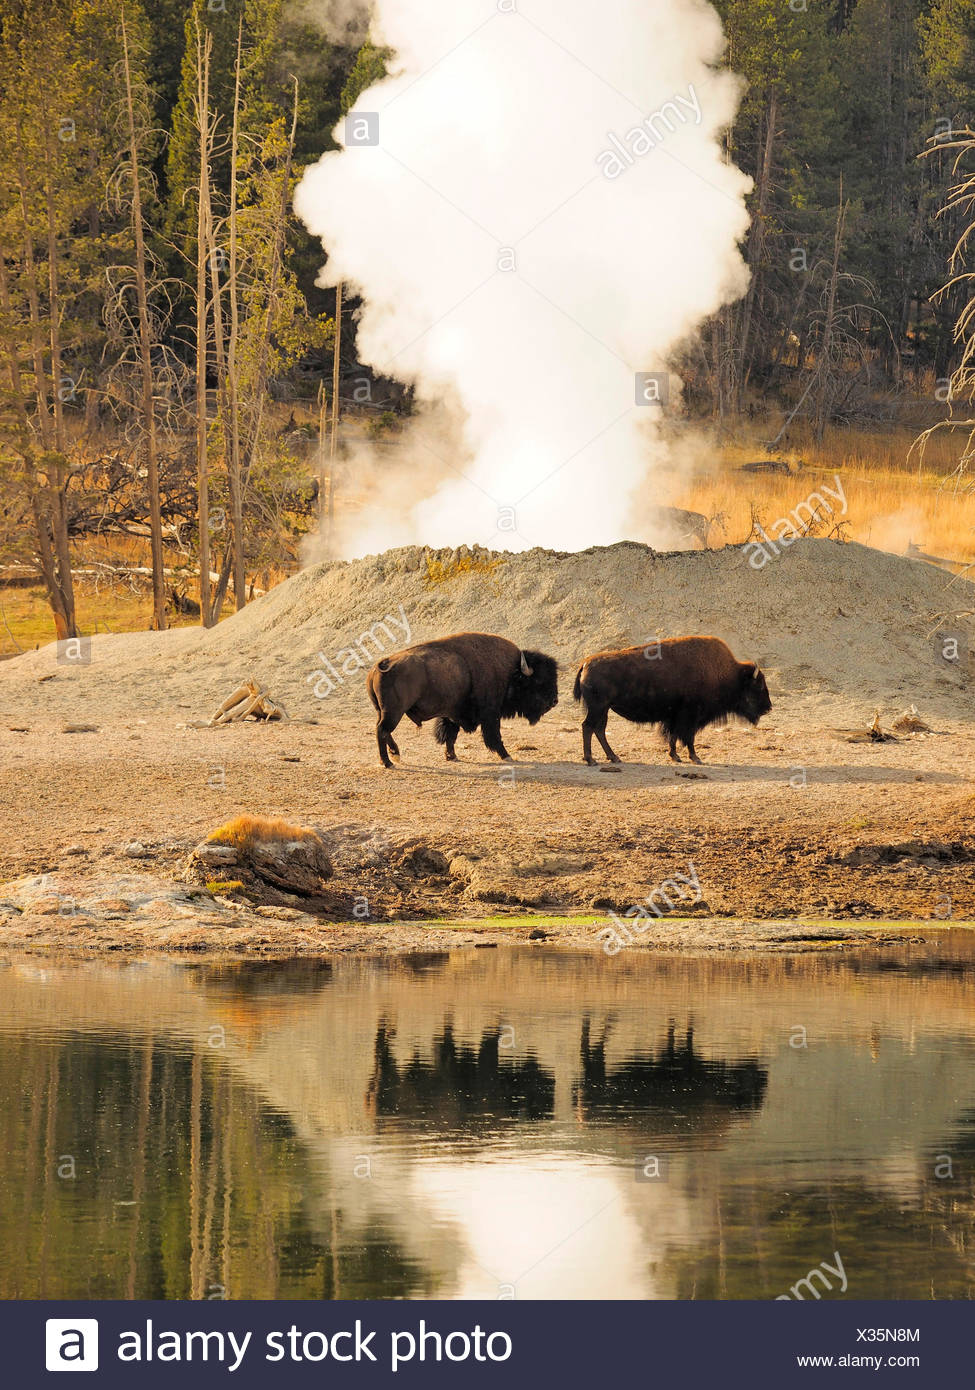 American bison, buffalo (Bison bison), buffalos in front of hot springs, USA, Wyoming, Yellowstone National Park, West Thumb Geysir Basin - Stock Image